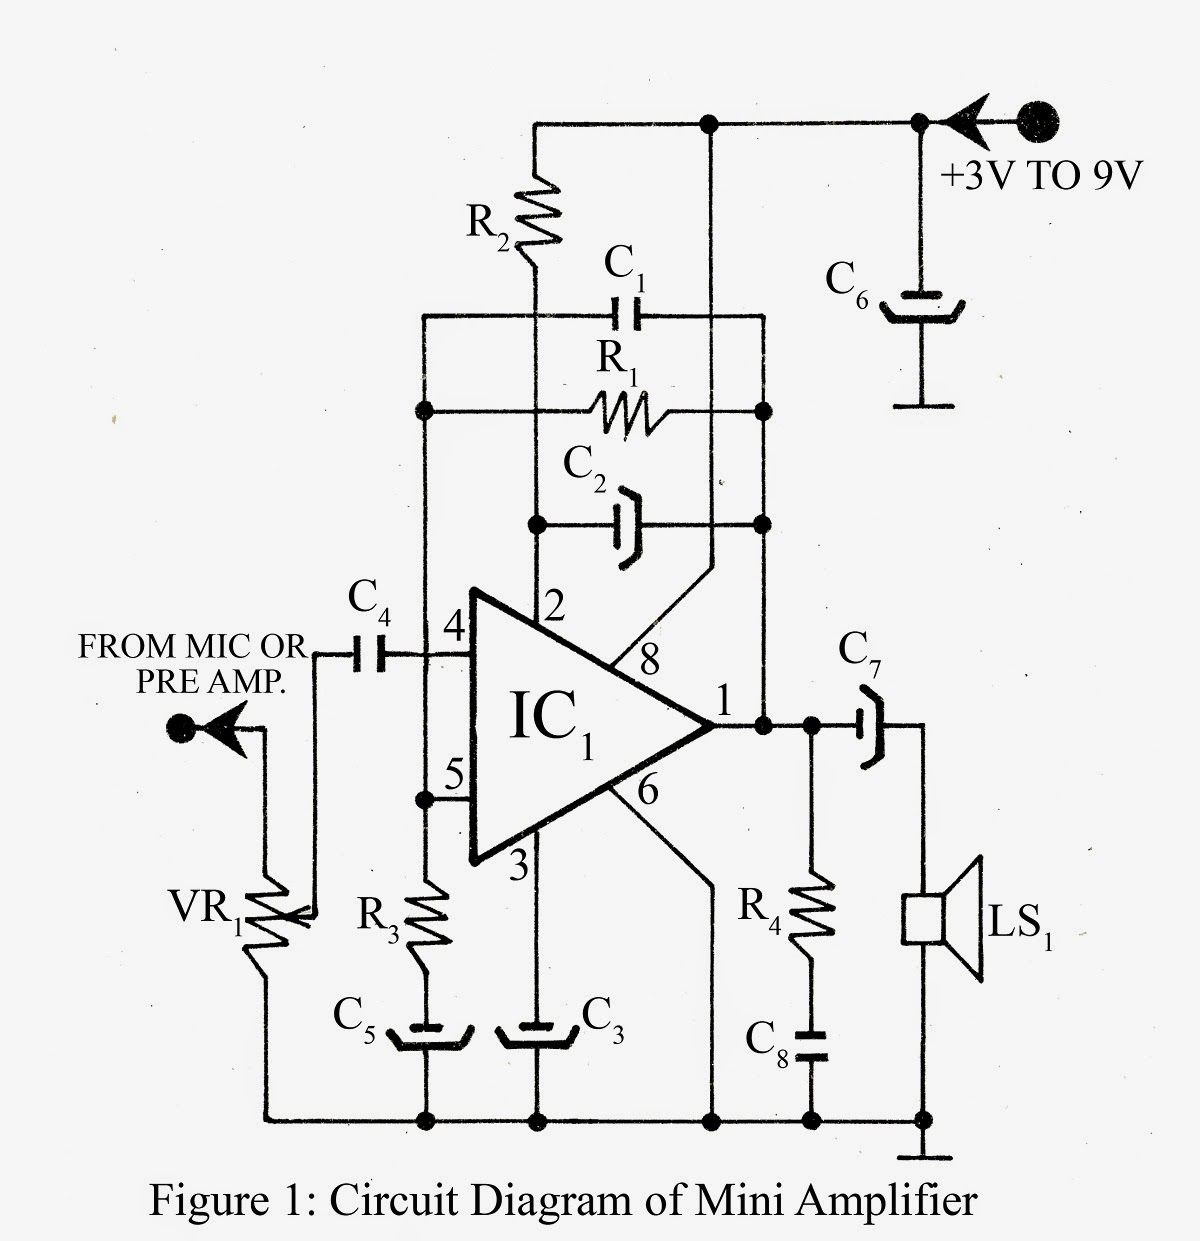 medium resolution of mini amplifier circuit diagram electronic projects ic based audio mini amplifier